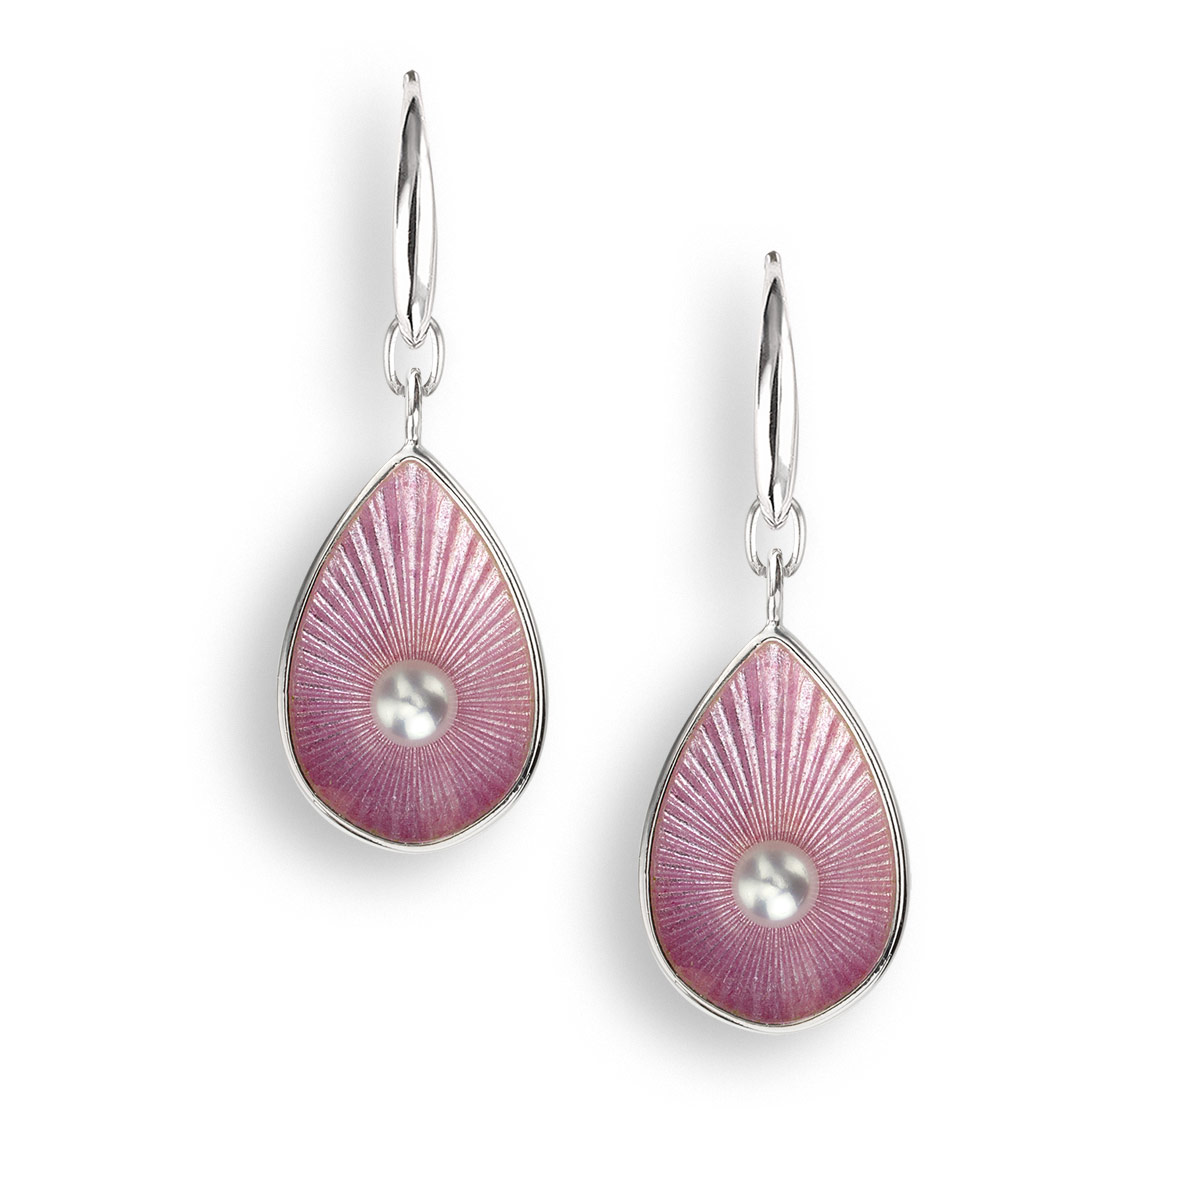 NB pink teardrop earrings